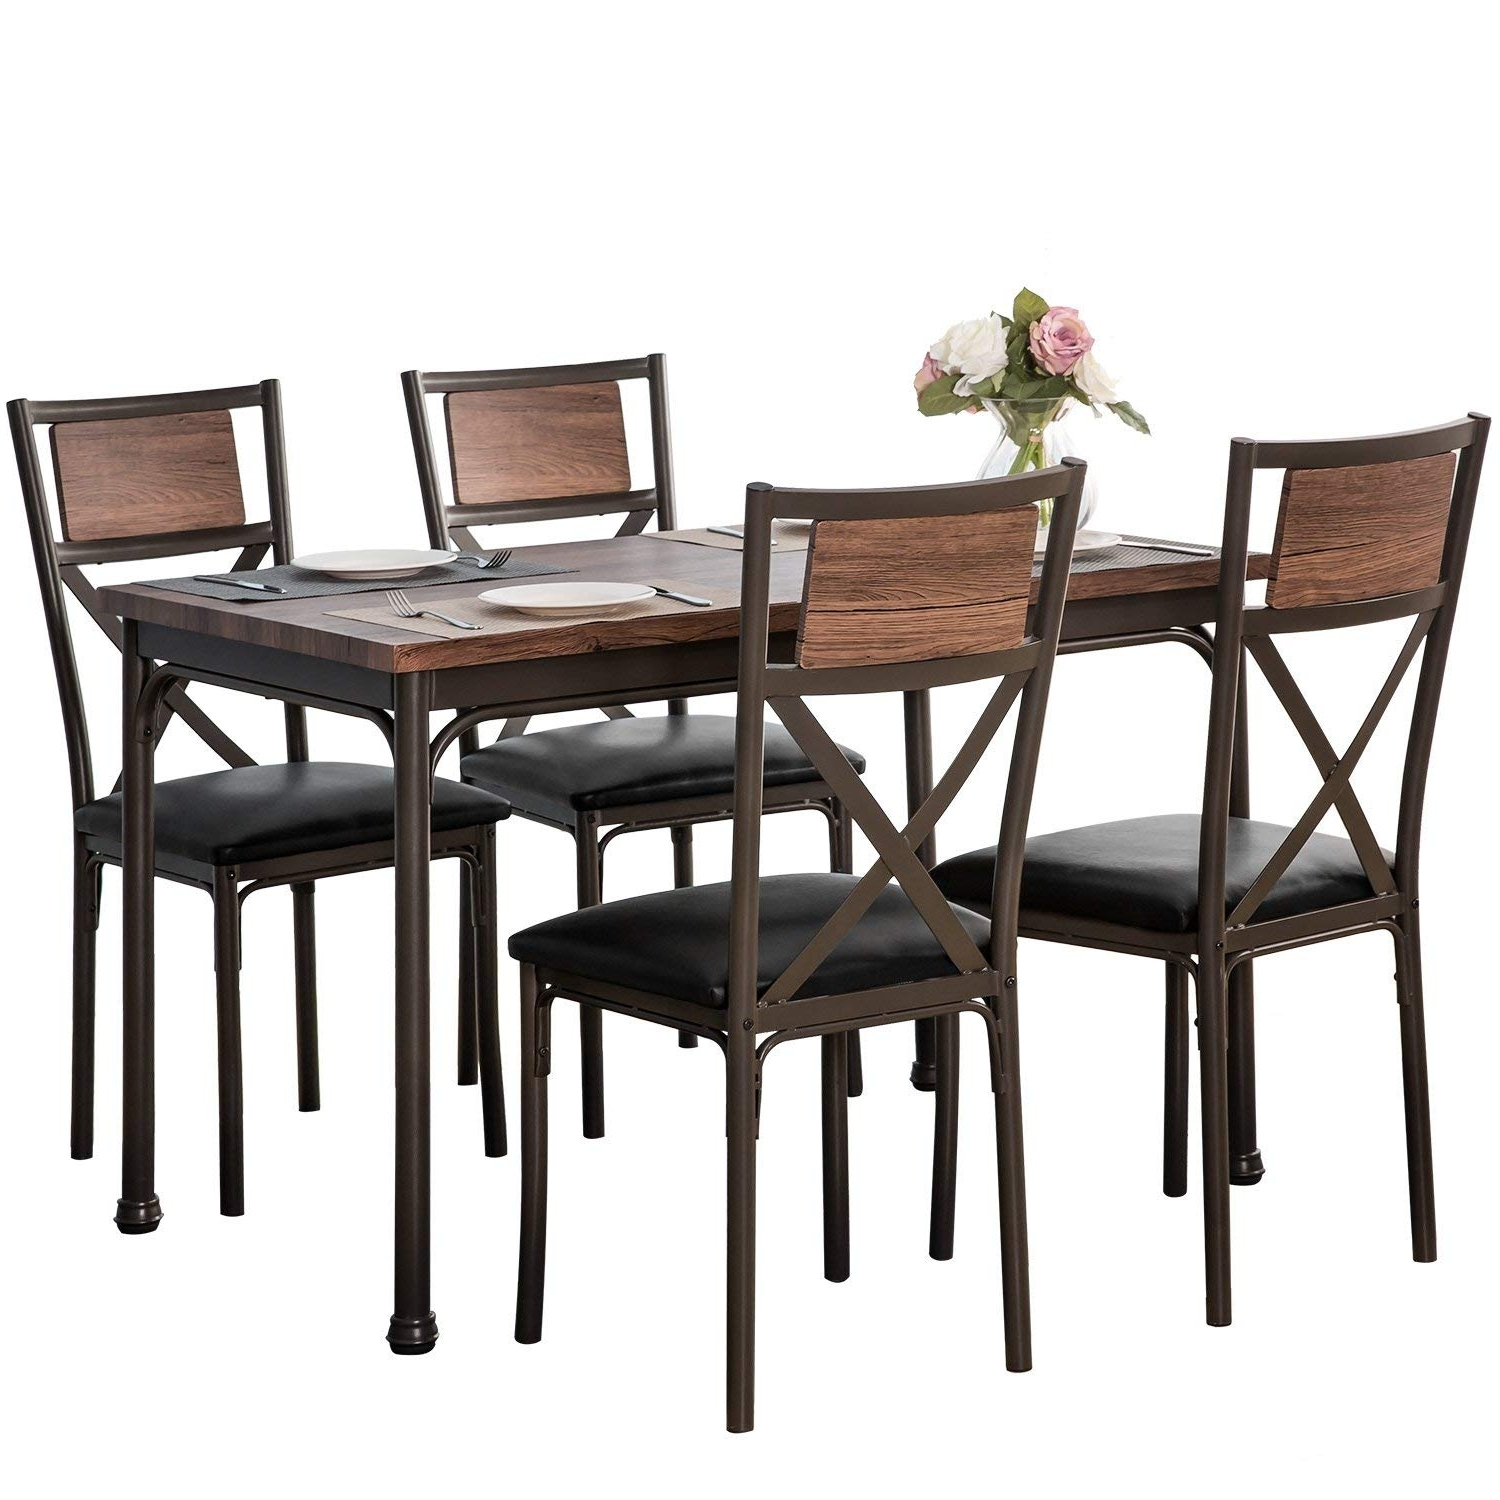 Amazon – Harper & Bright Designs 5 Piece Dining Set Kitchen Regarding Most Popular Harper 5 Piece Counter Sets (Gallery 5 of 25)